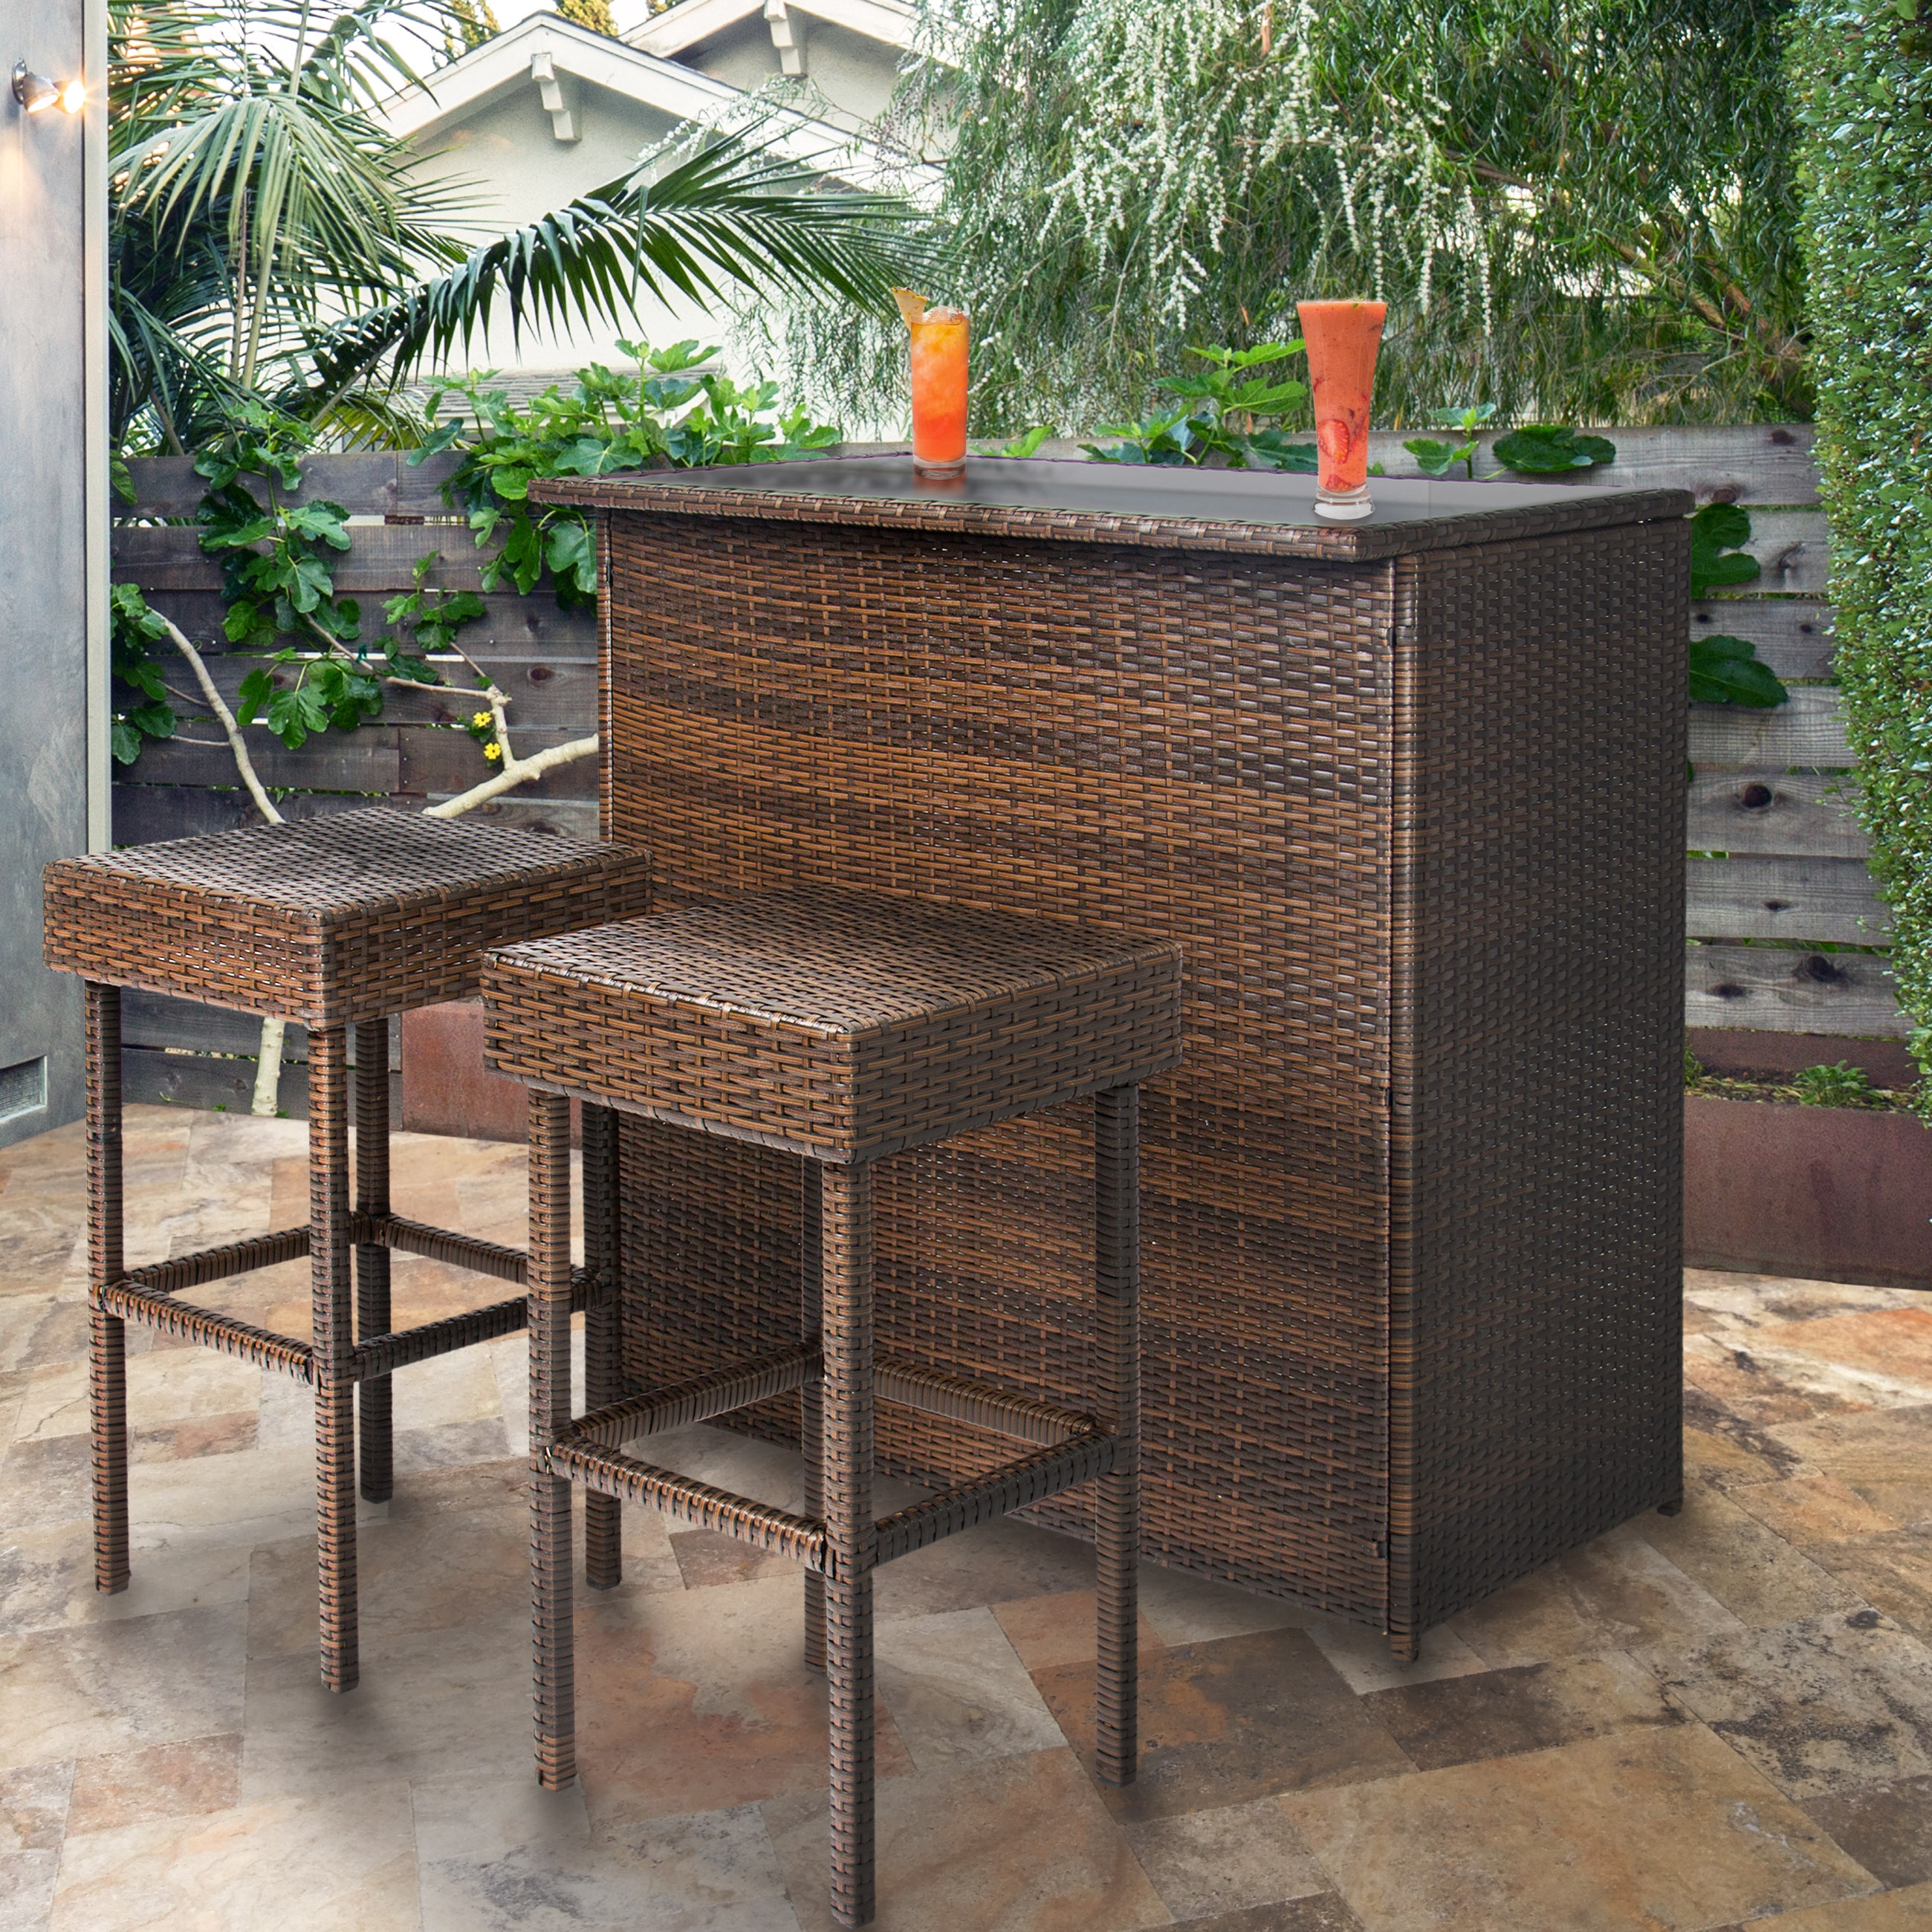 outdoor bar table best choice products 3pc wicker bar set patio outdoor backyard table u0026 EFXWYAL